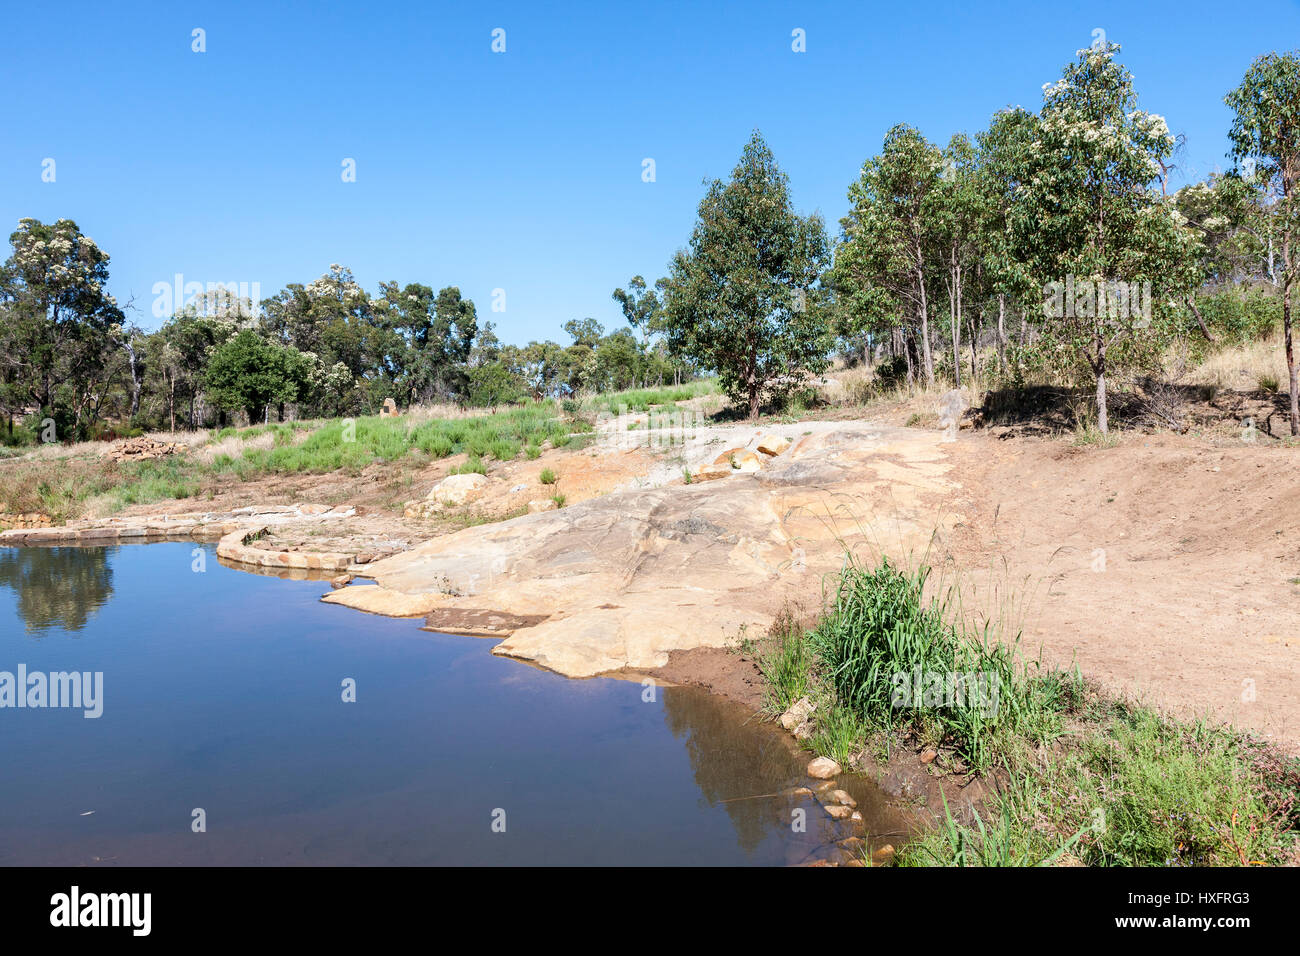 Peth, Western Austrlia, a pool in Lesmurdie National Park near the head of the falls. - Stock Image